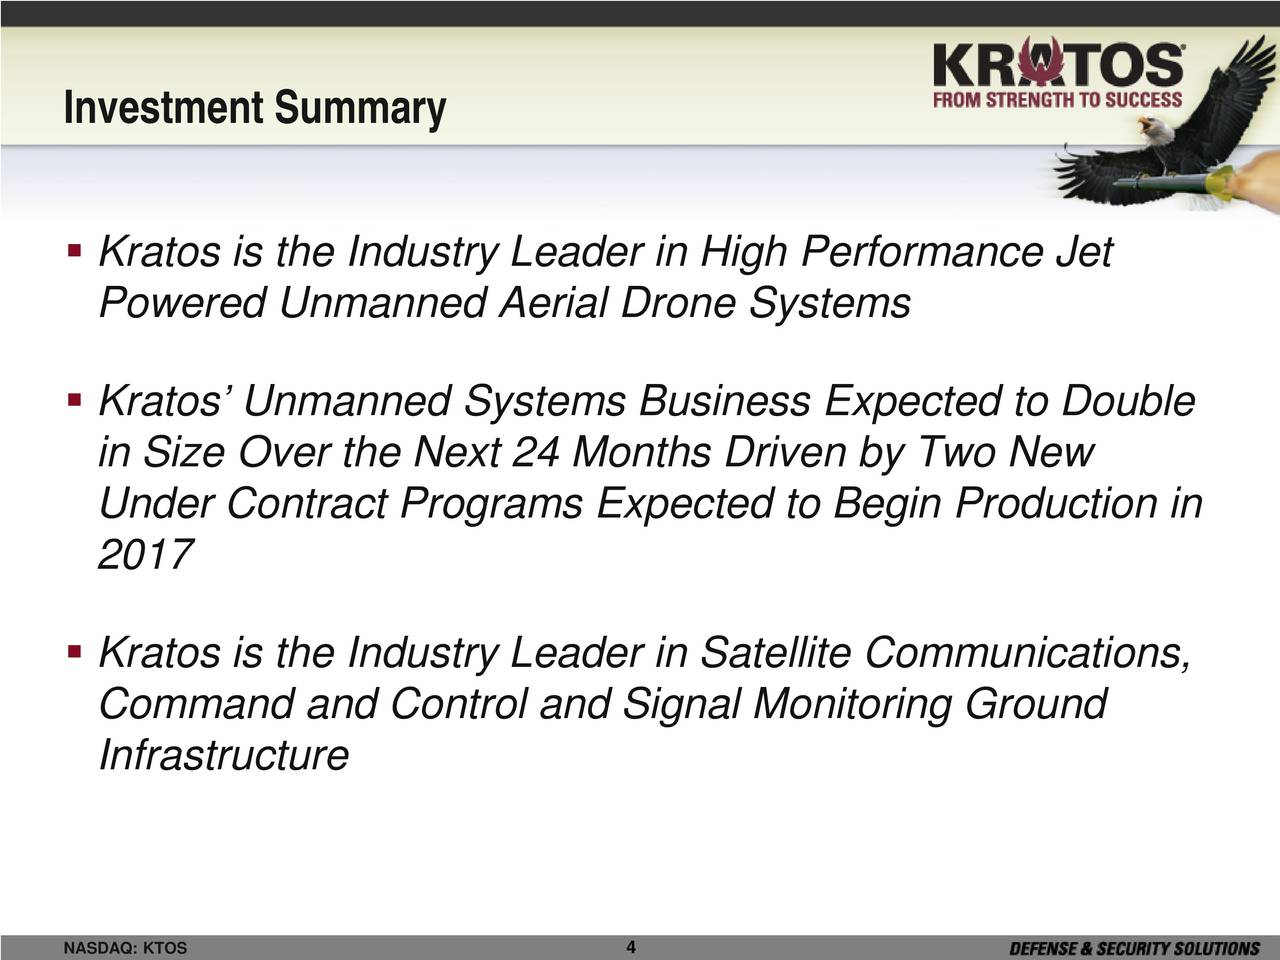 investing in drone technology with 4036027 Kratos Defense And Security Solutions Ktos Presents 19th Annual Needham Growth Conference on Top Trends In The Gartner Hype Cycle For Emerging Technologies 2017 besides 7728251 Drl The Drone Racing League likewise Moose Licences Cut By Nearly 2 500 But Is That Enough G0l78g besides Gopro Hero 6 Release Nick Woodman likewise 20982612 Rare Earth Elements Rees May Make Coal Important Again.